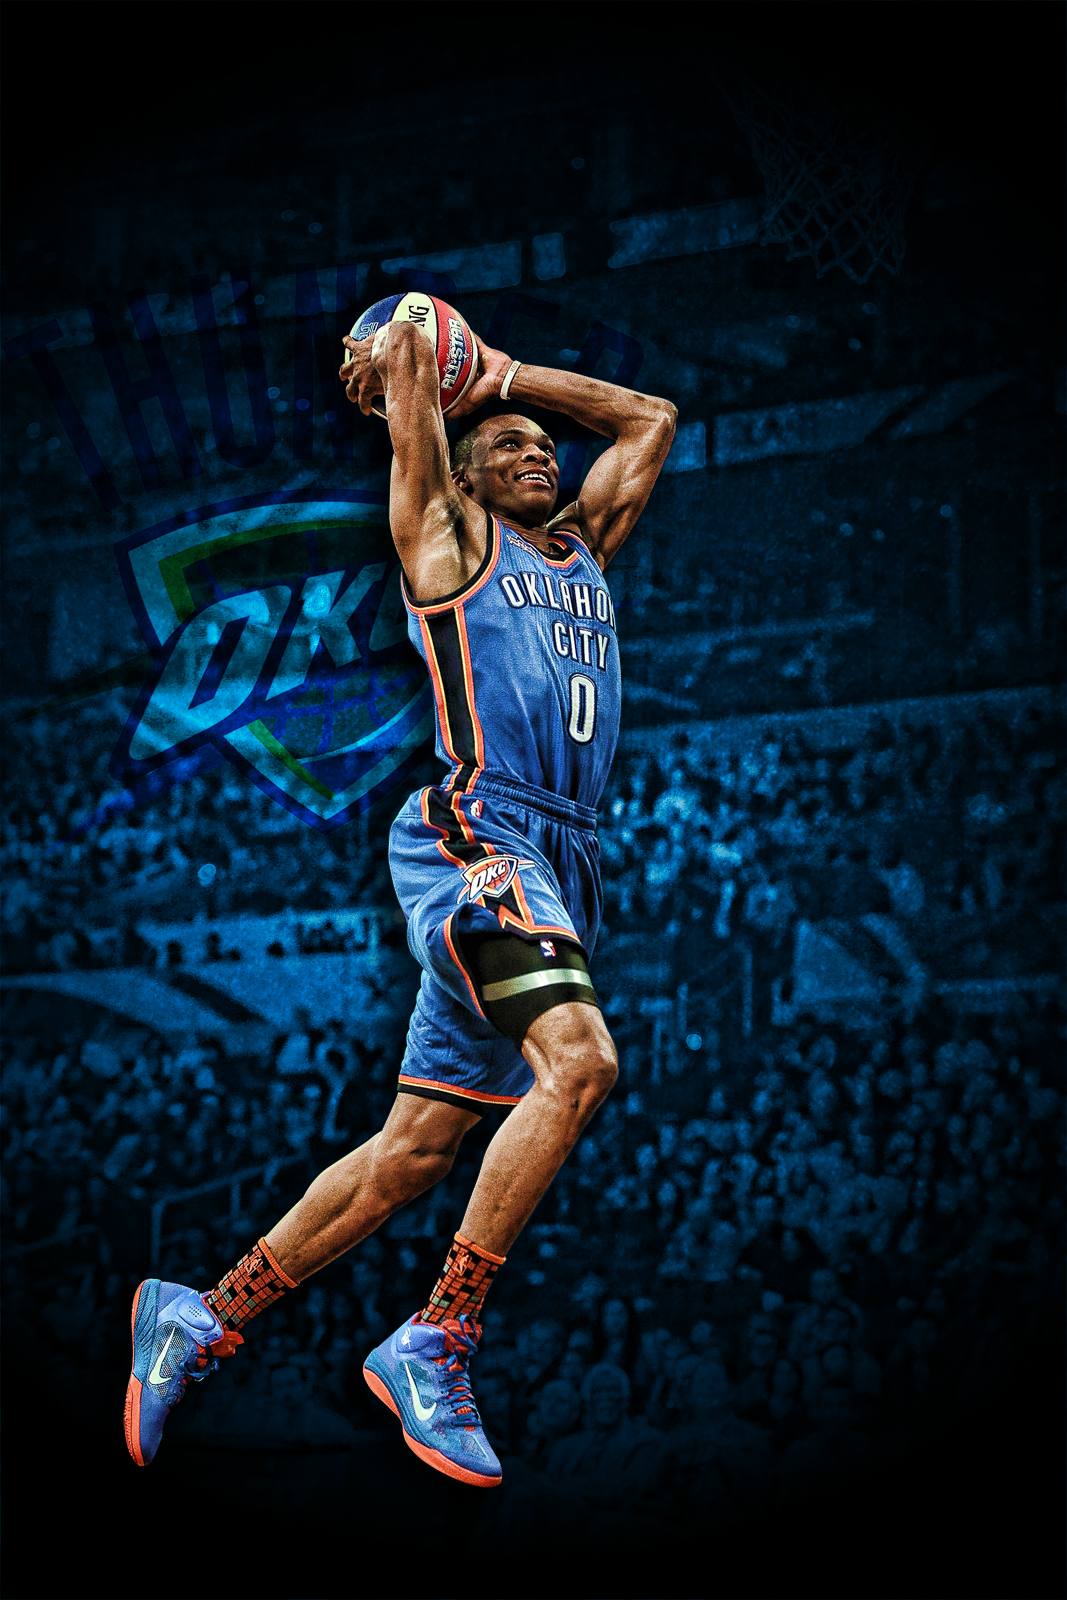 Russell westbrook wallpaper iphone wallpapersafari - Russell Westbrook Wallpaper Slam Dunk Cute Wallpapers